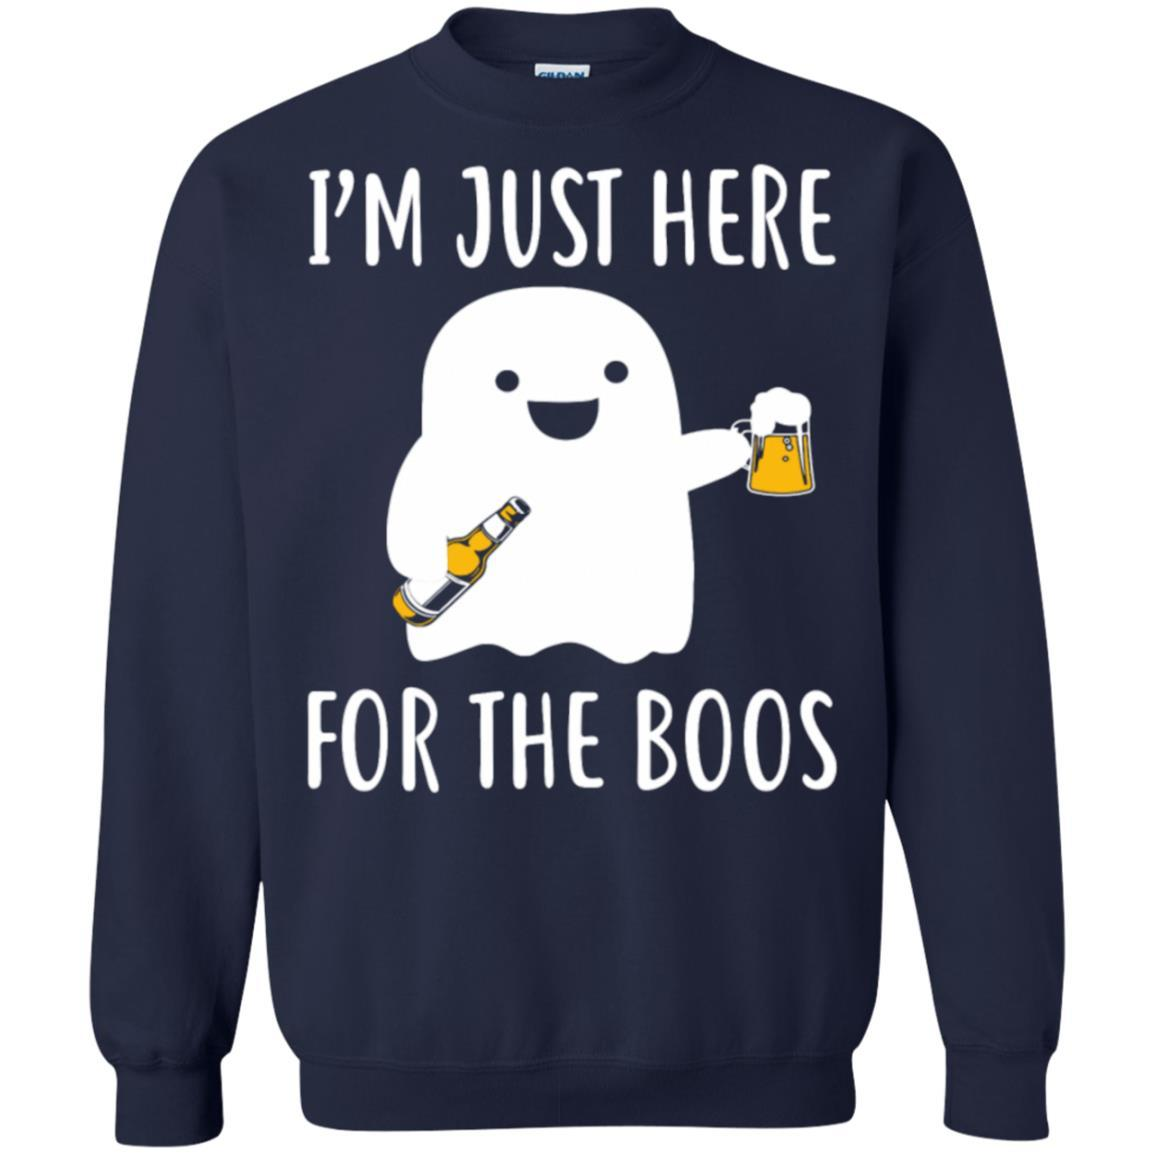 I Am Just Here For The Boos - Pullover Sweatshirt Navy / 5XL